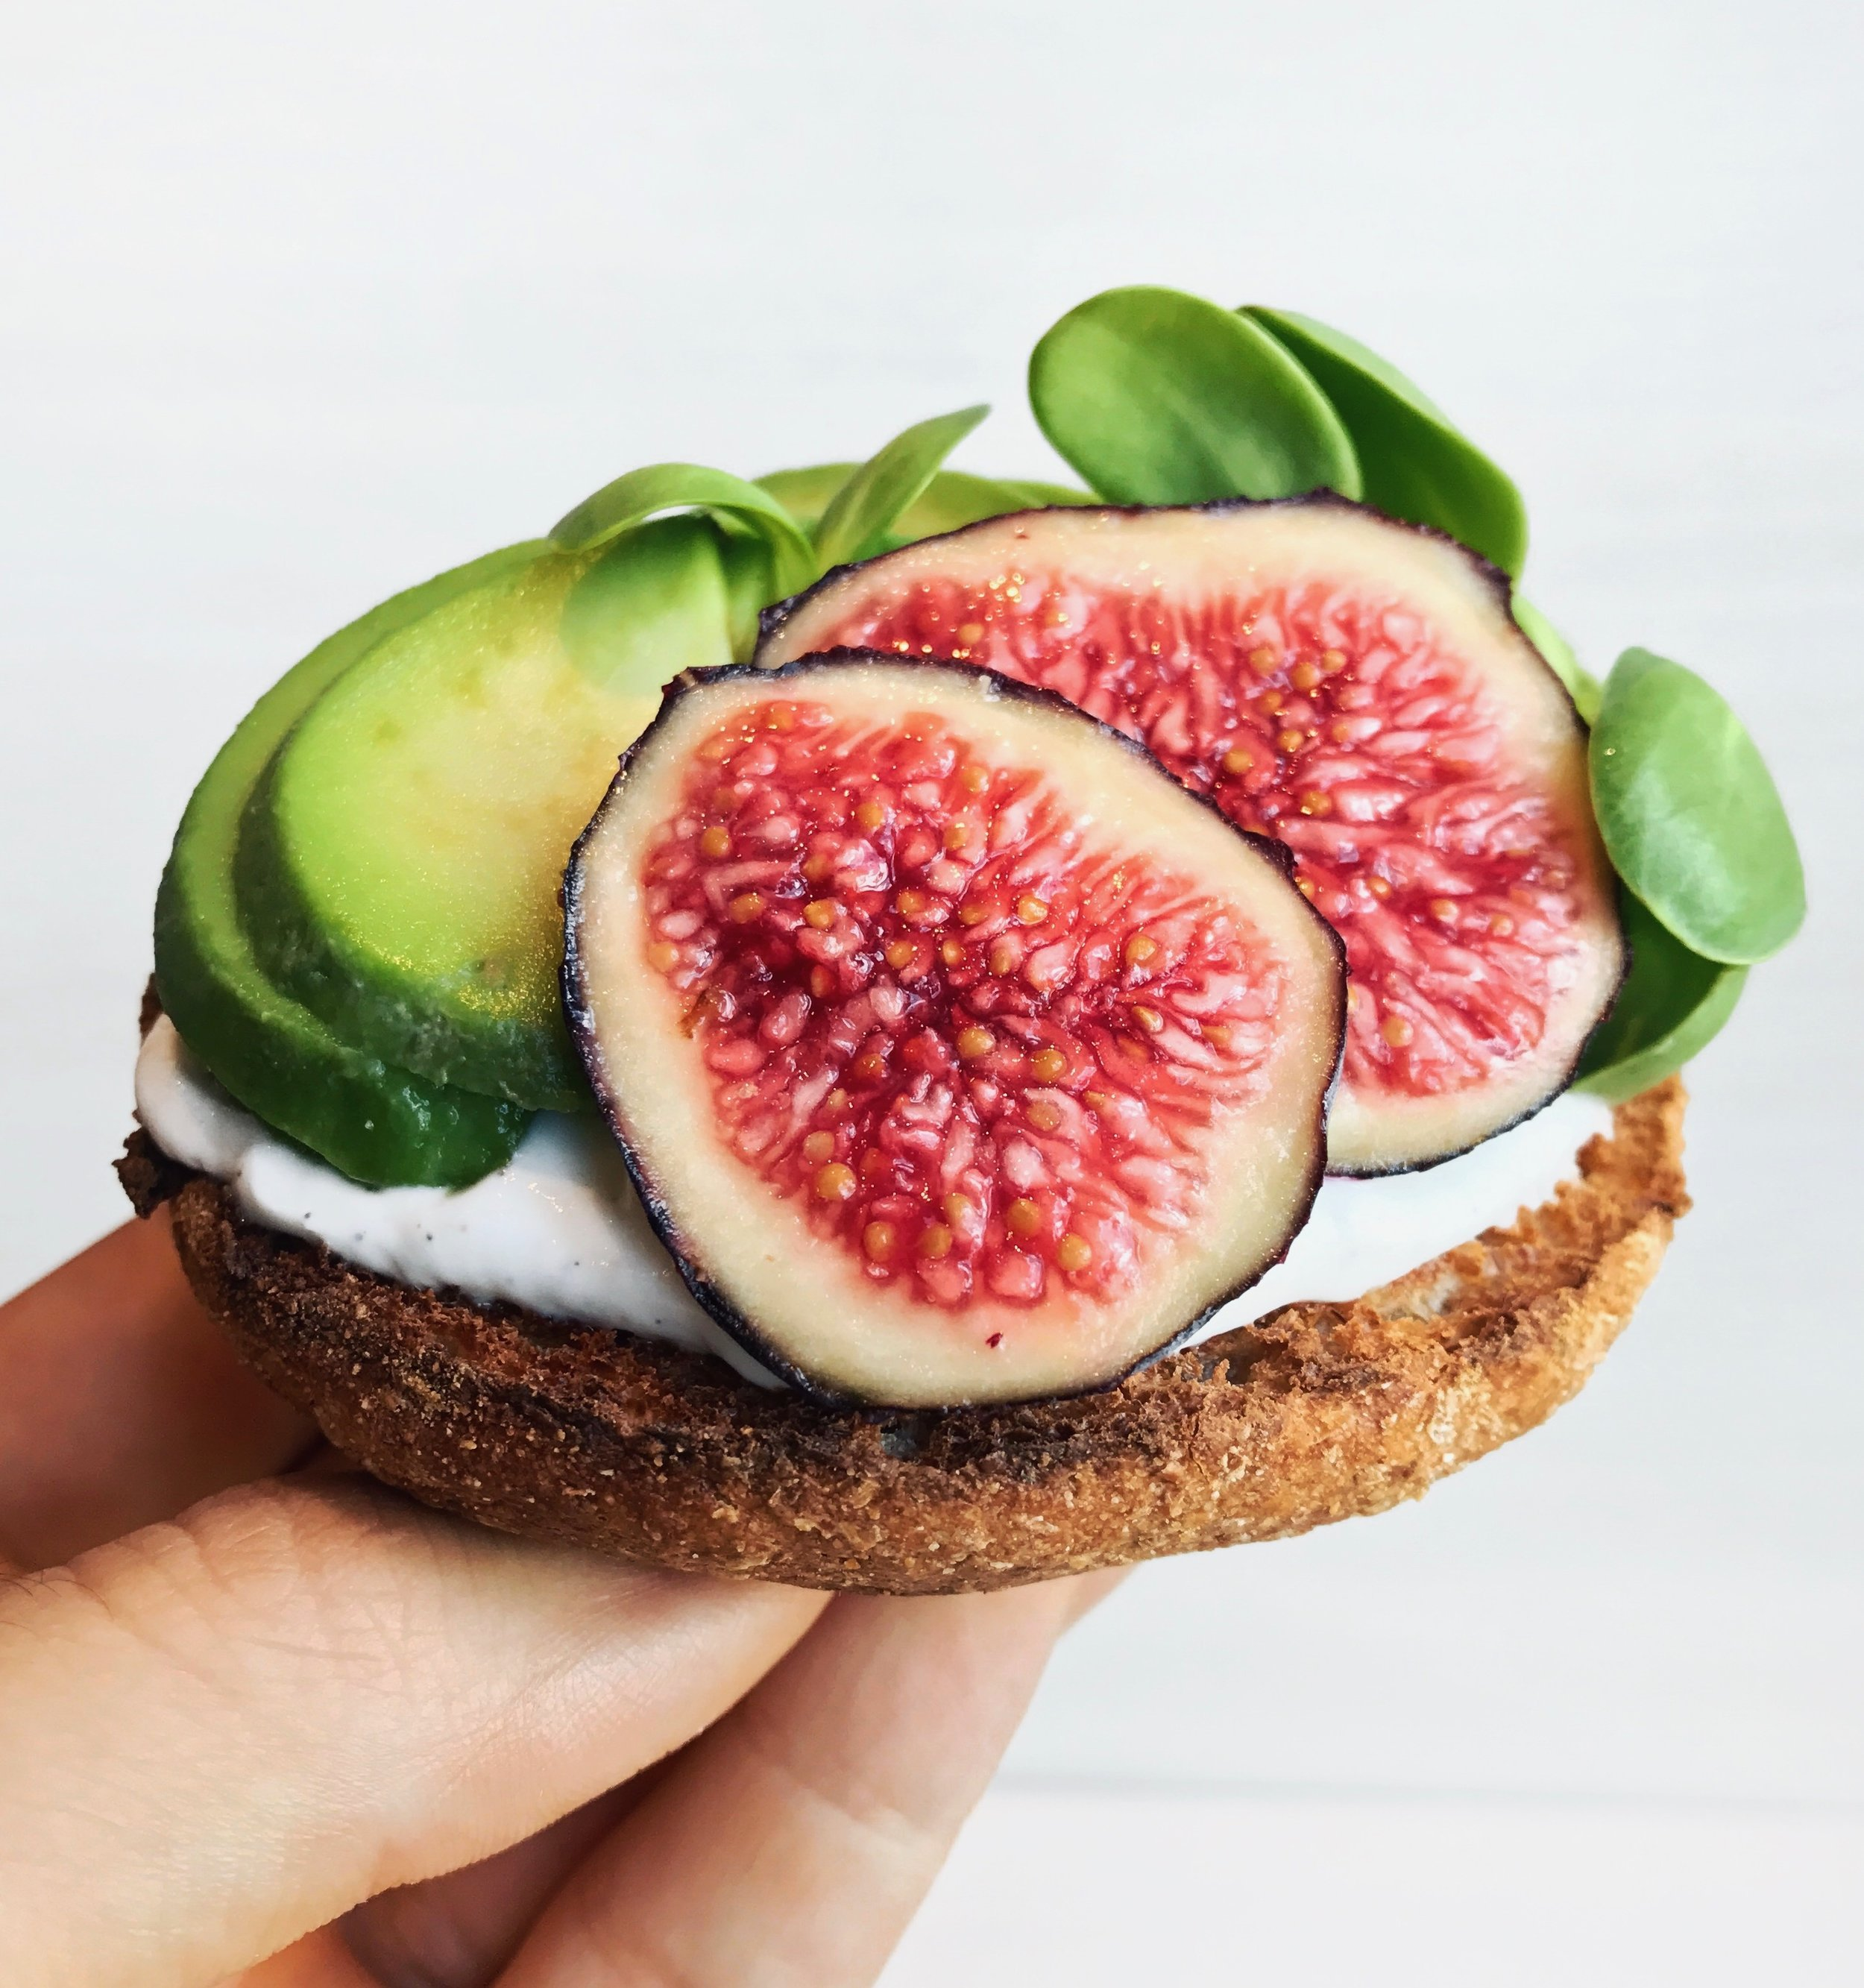 Avocado & Figs